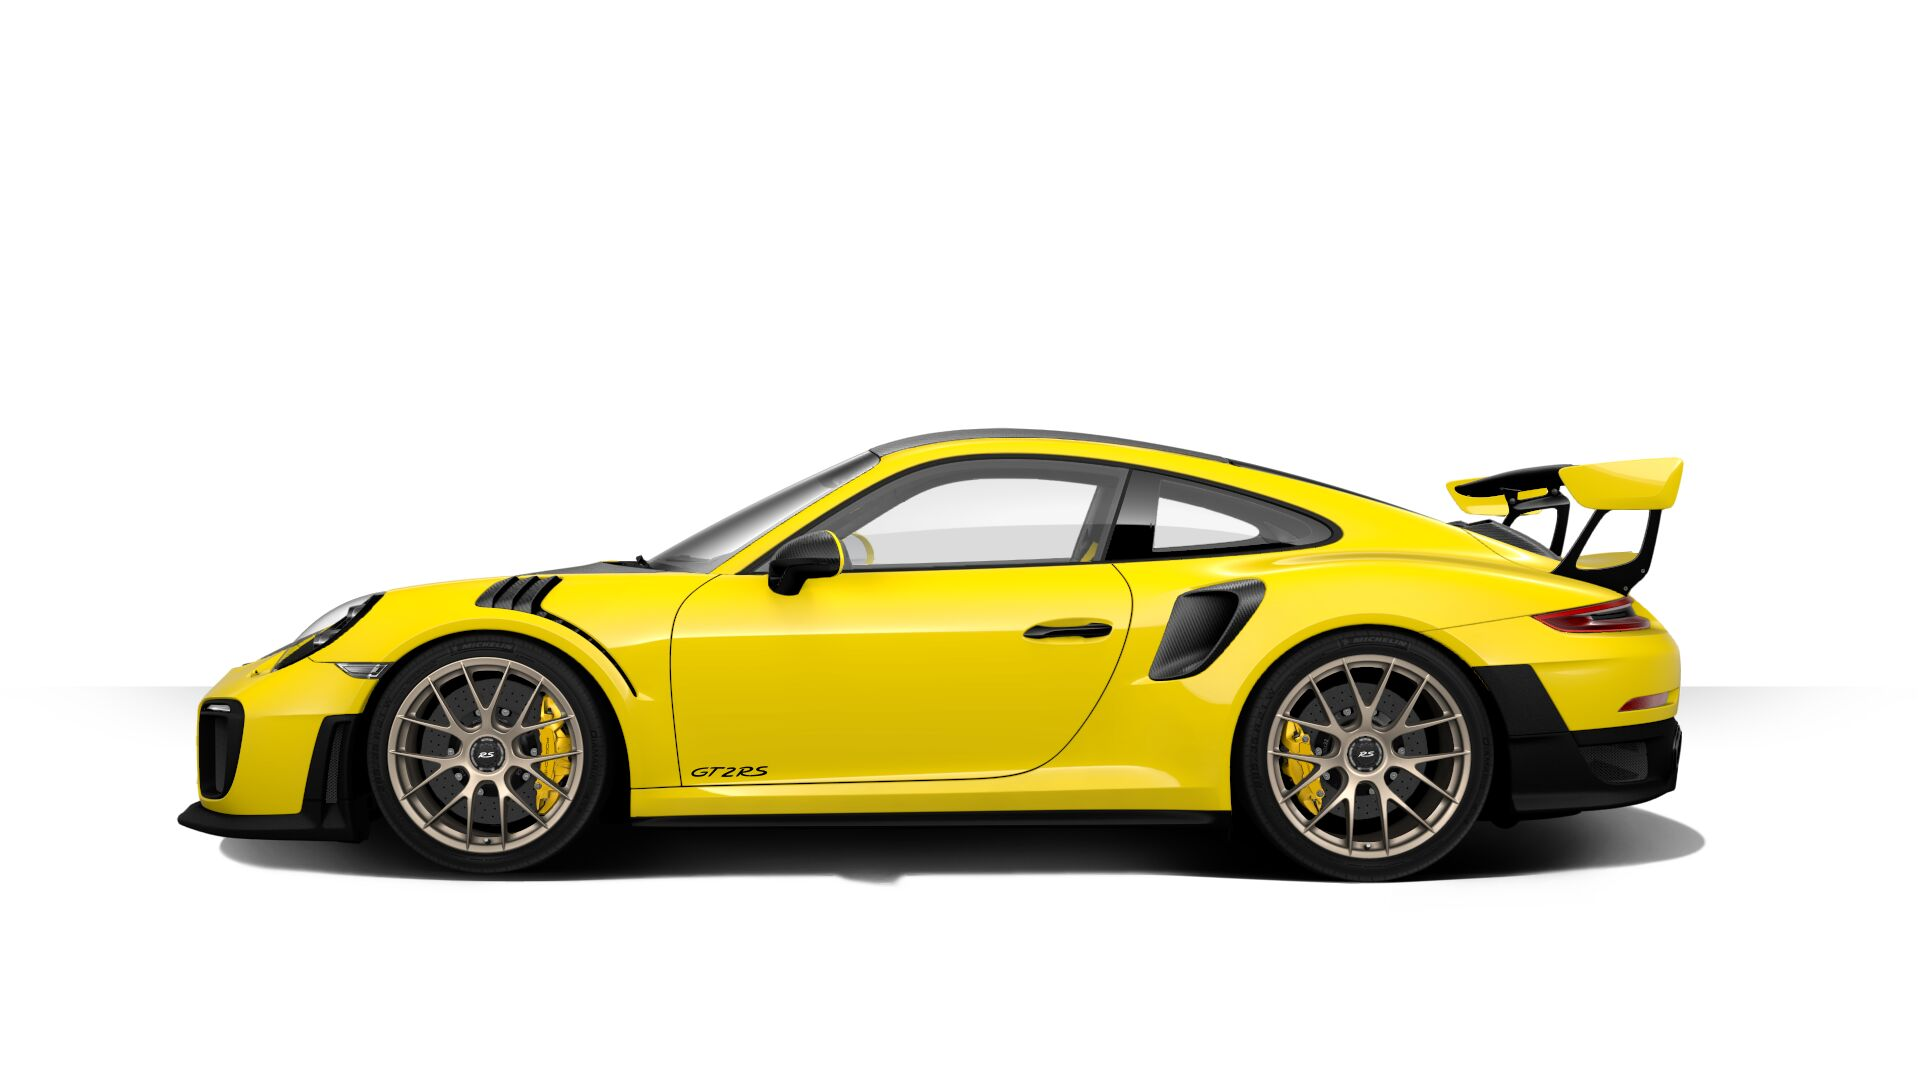 2018 porsche 911 gt2 rs configurator launched gtspirit. Black Bedroom Furniture Sets. Home Design Ideas